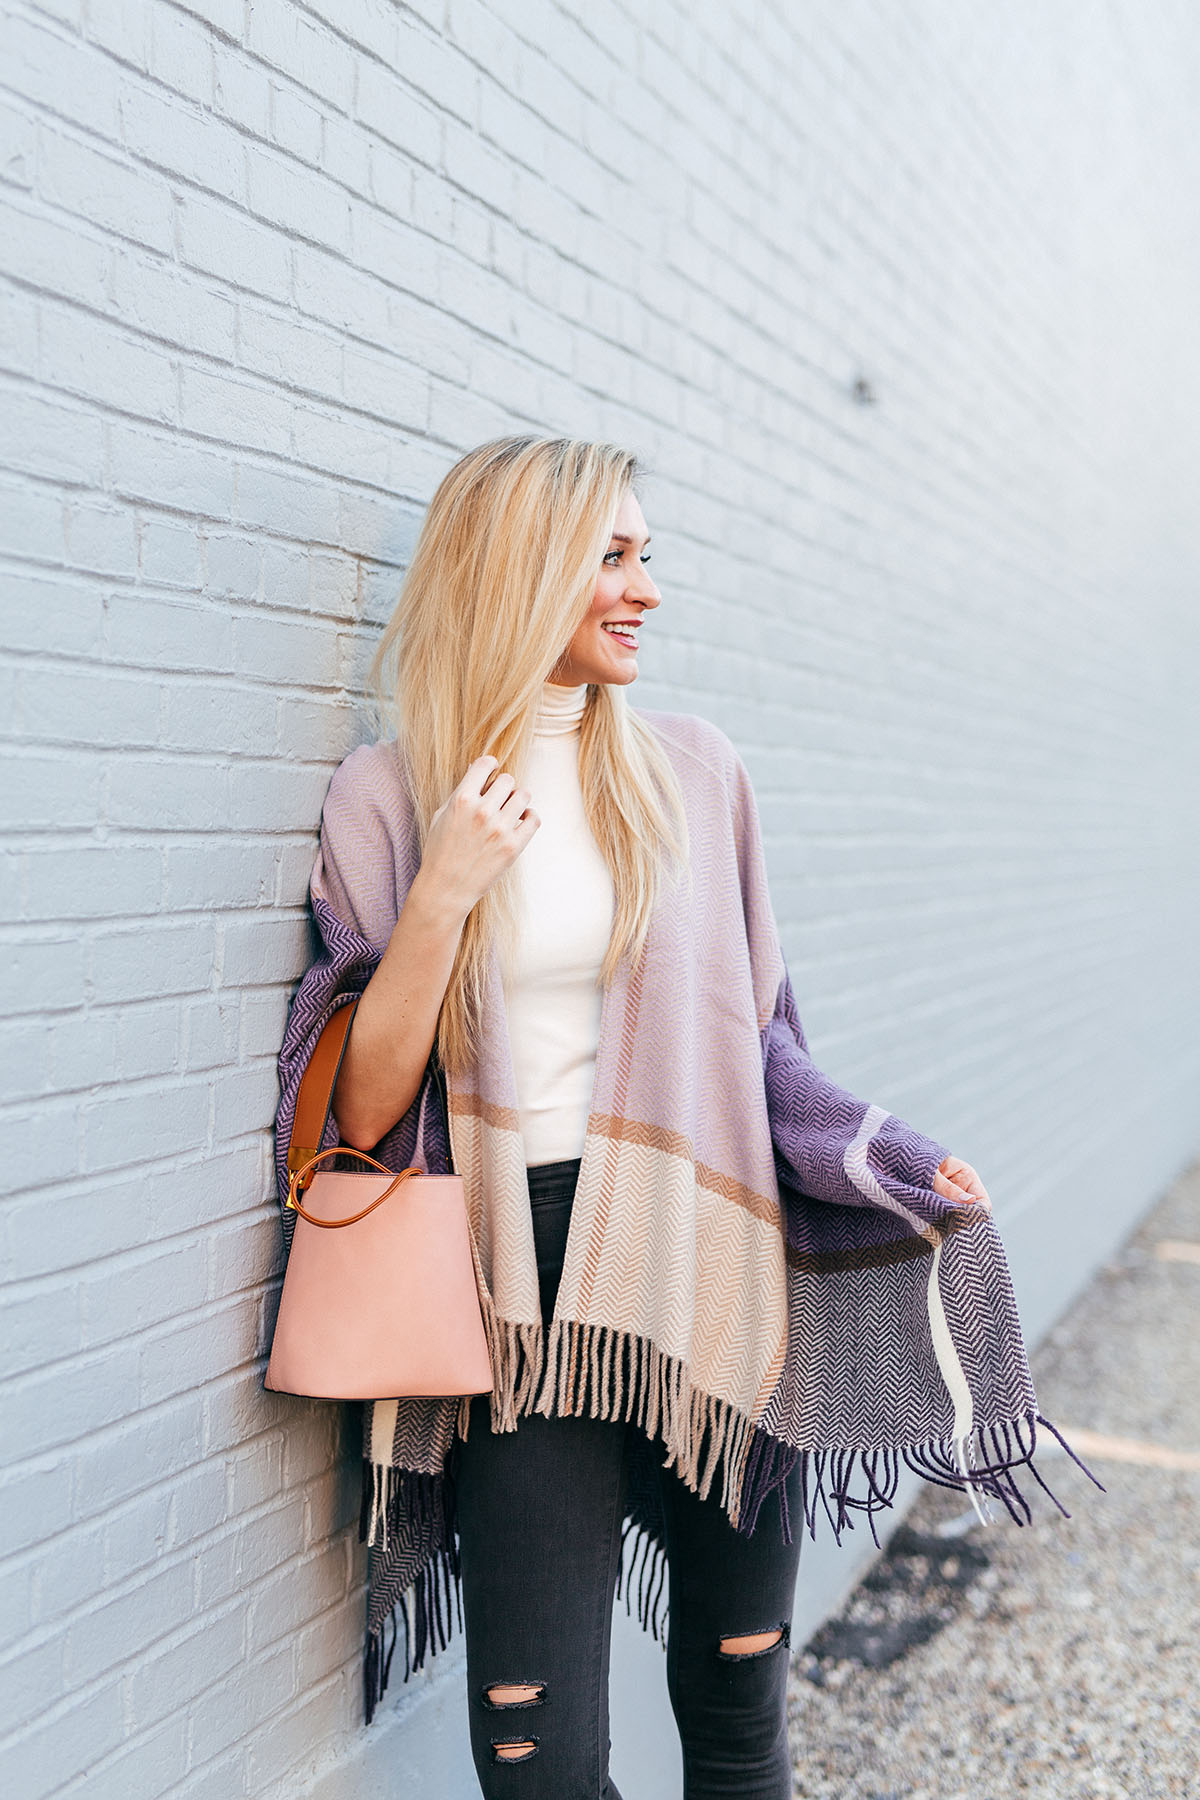 Fall Poncho Outfit Idea | Fall Date Night Outfit Ideas | Fall Poncho for Date Night | How to Dress Up a Poncho